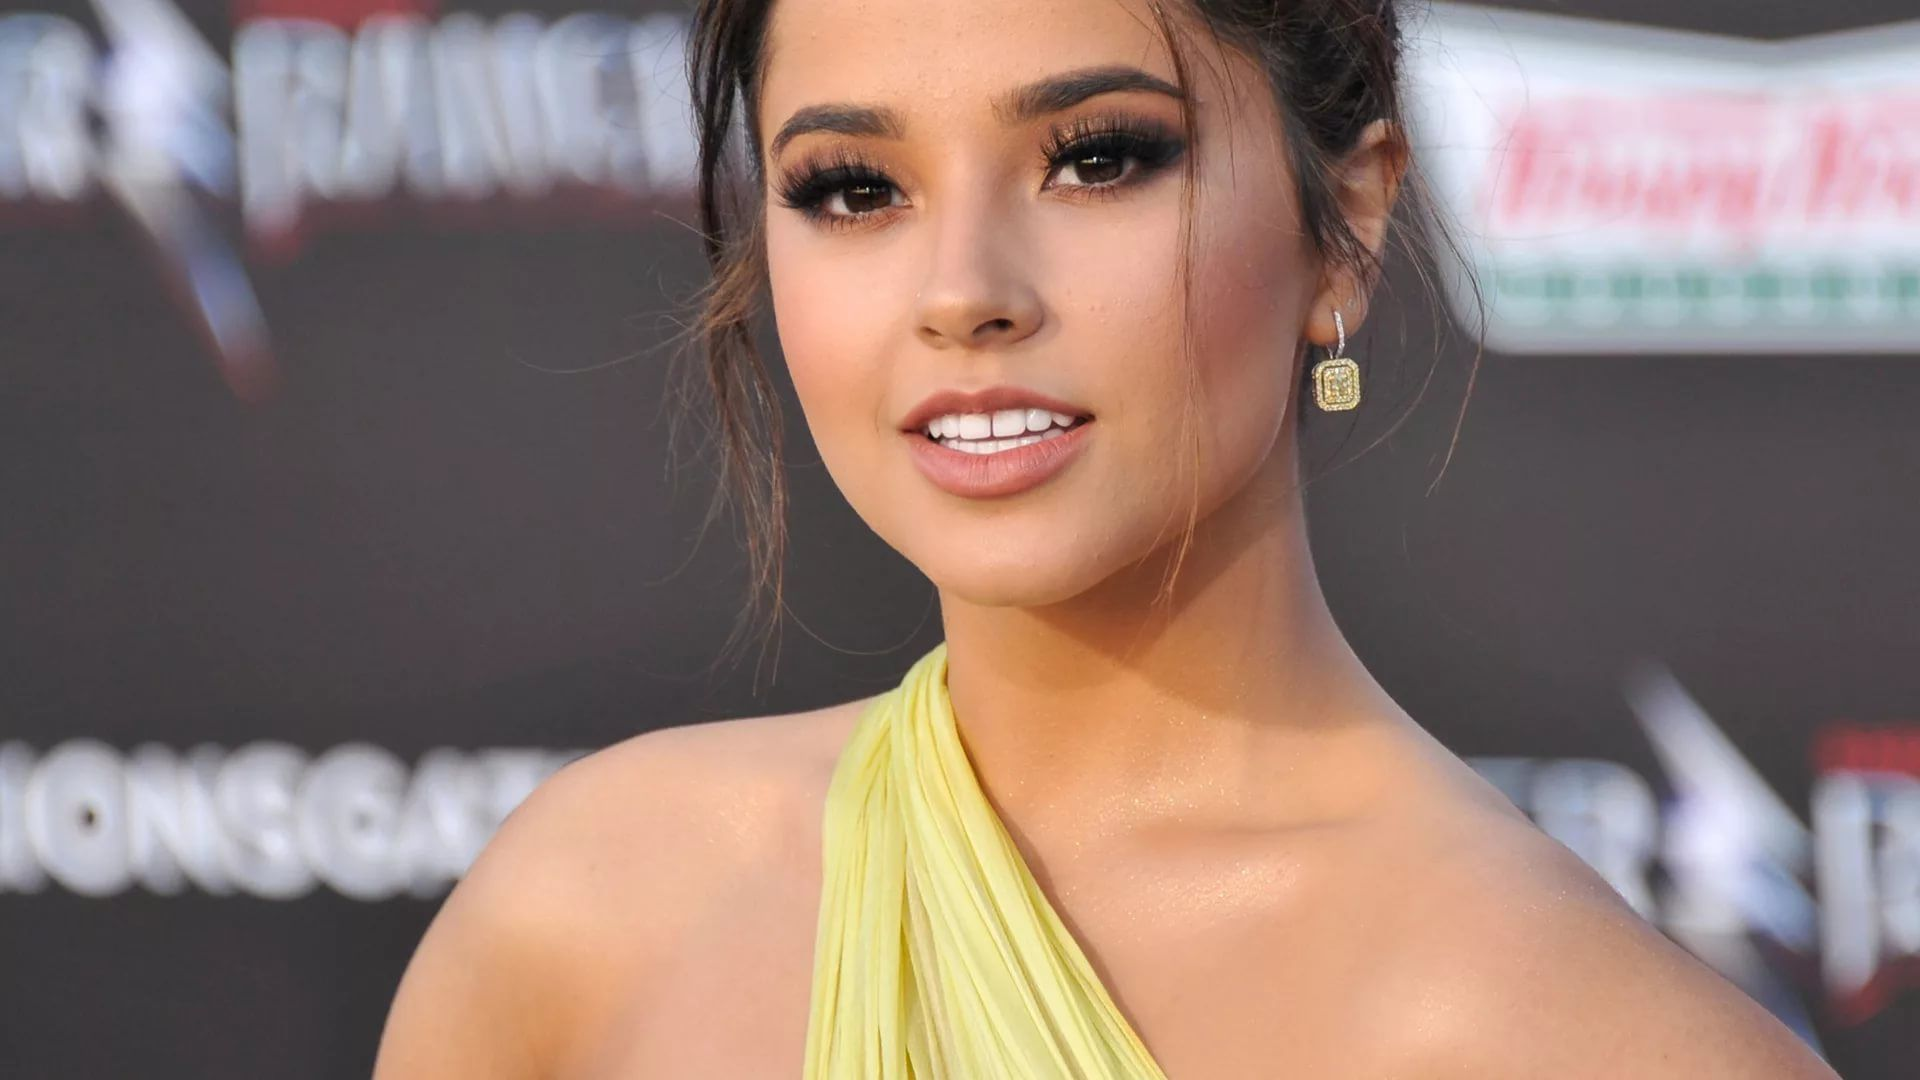 Becky G Free Wallpaper and Background